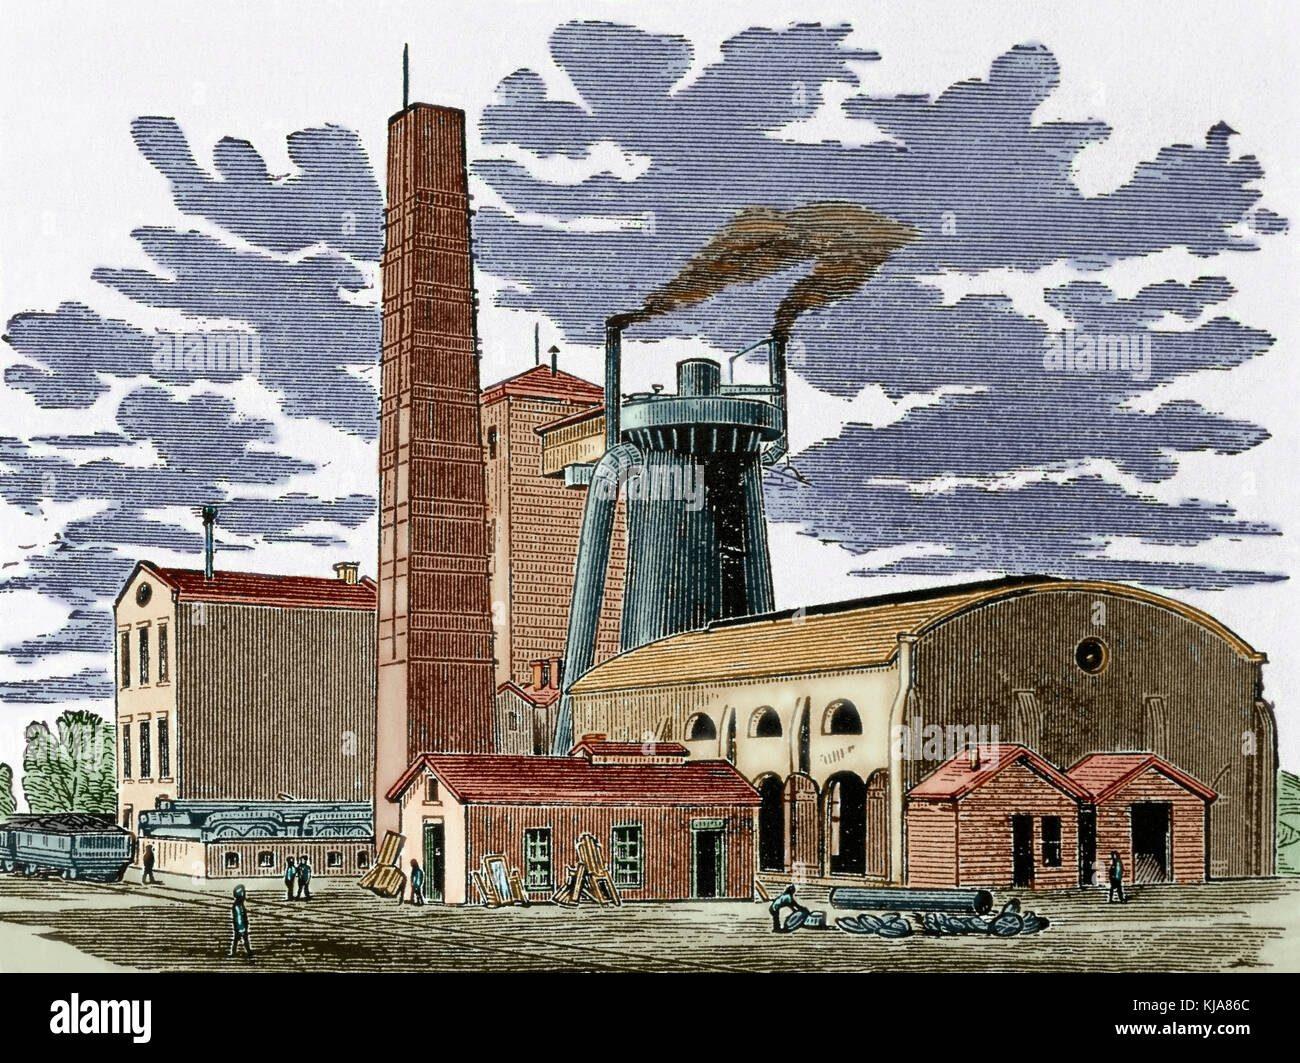 History of the United States. 19th century. Kentucky. The Ashland Furnace and Coal Works, 1876. Engraving. Colored. - Stock Image